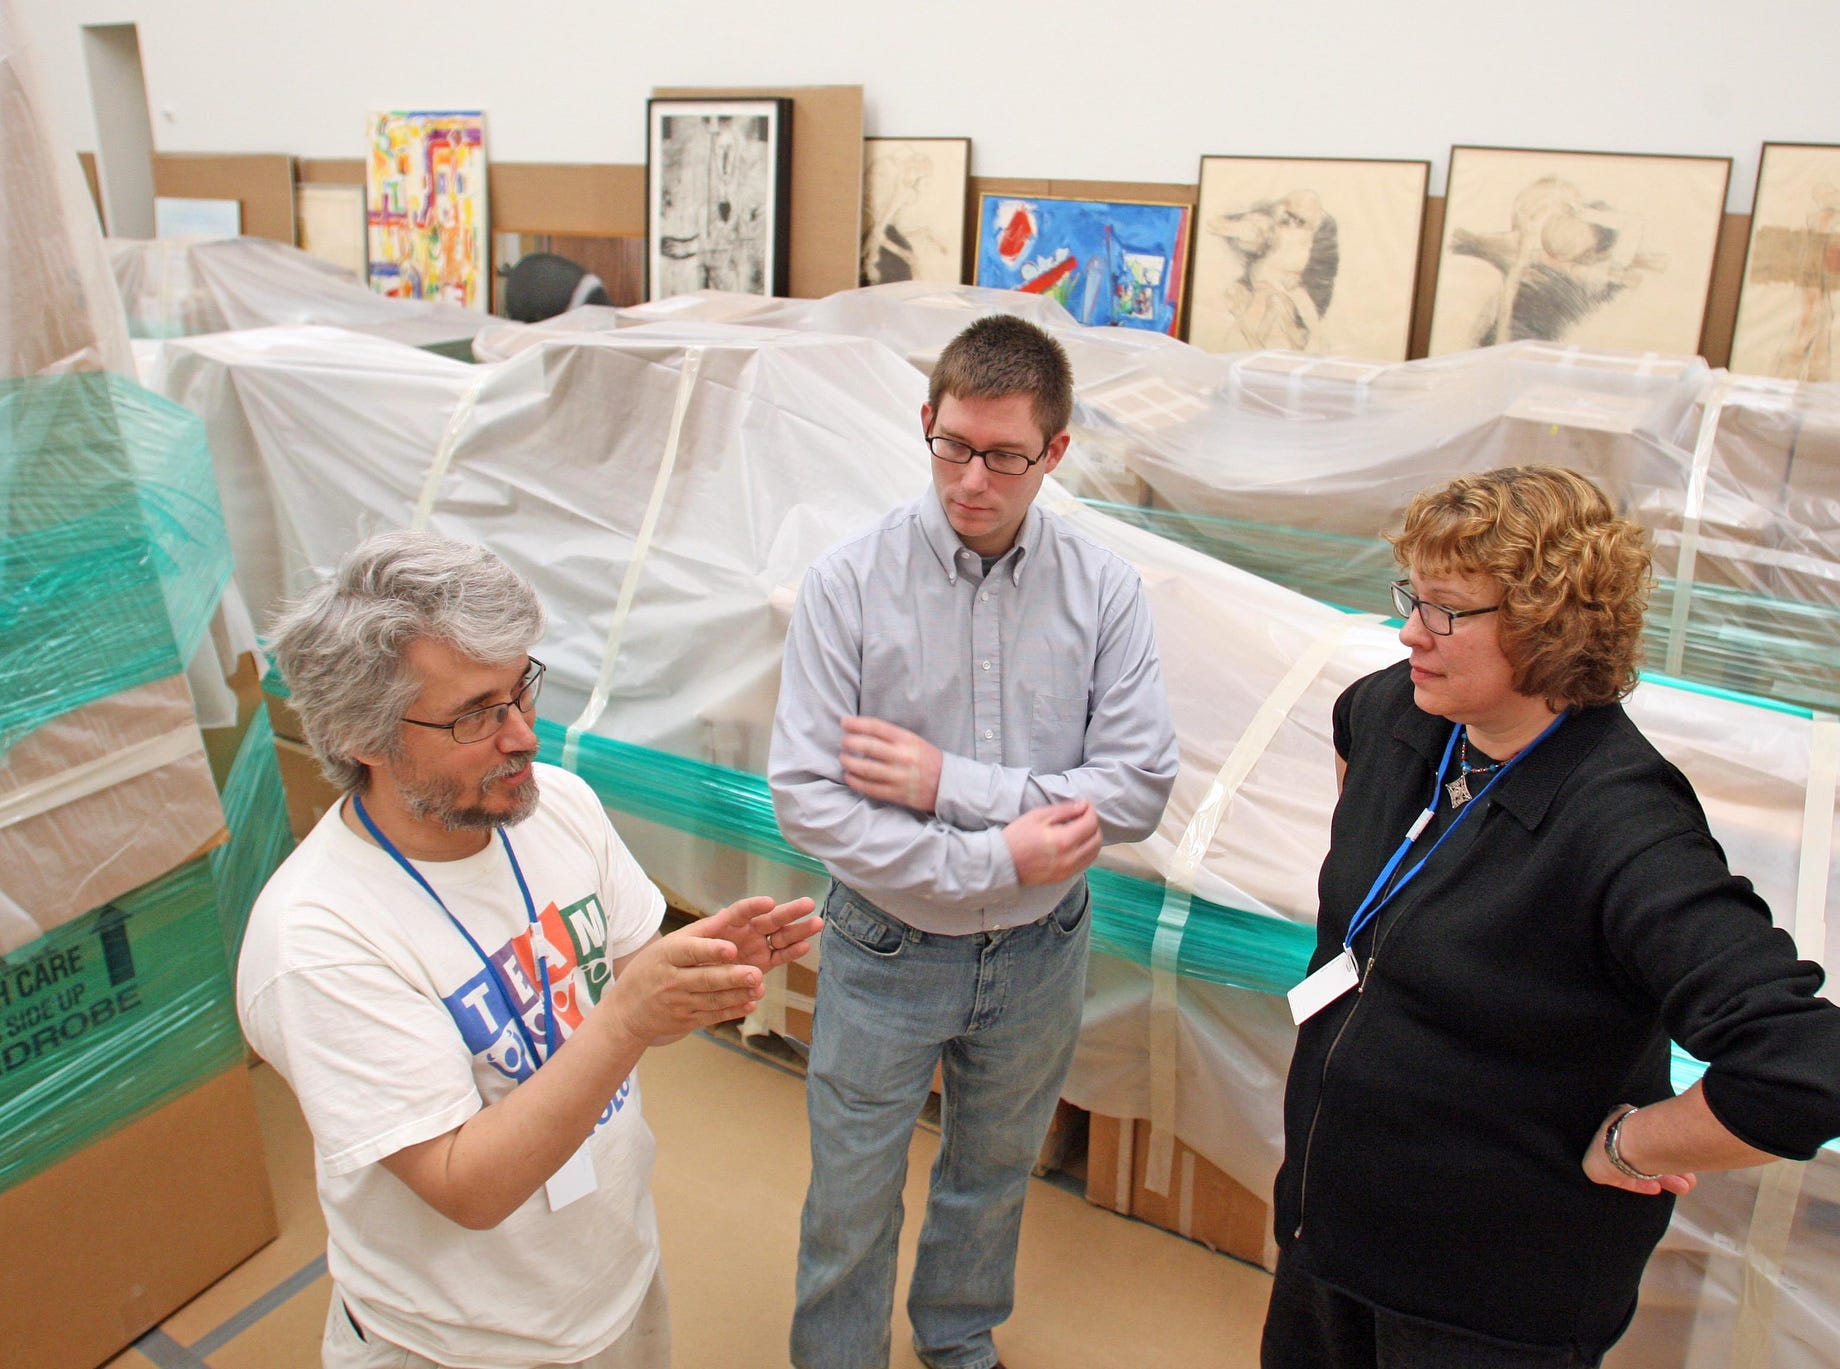 Steven Erickson, left, Nathan Popp and Kathleen Edwards, all with the University of Iowa Museum of Art, stand  amid items from the UI art collection on the fourth floor of Figge Art Museum in Davenport. The museum is providing storage and display space for the art, which was displaced when the museum in Iowa City flooded last summer.